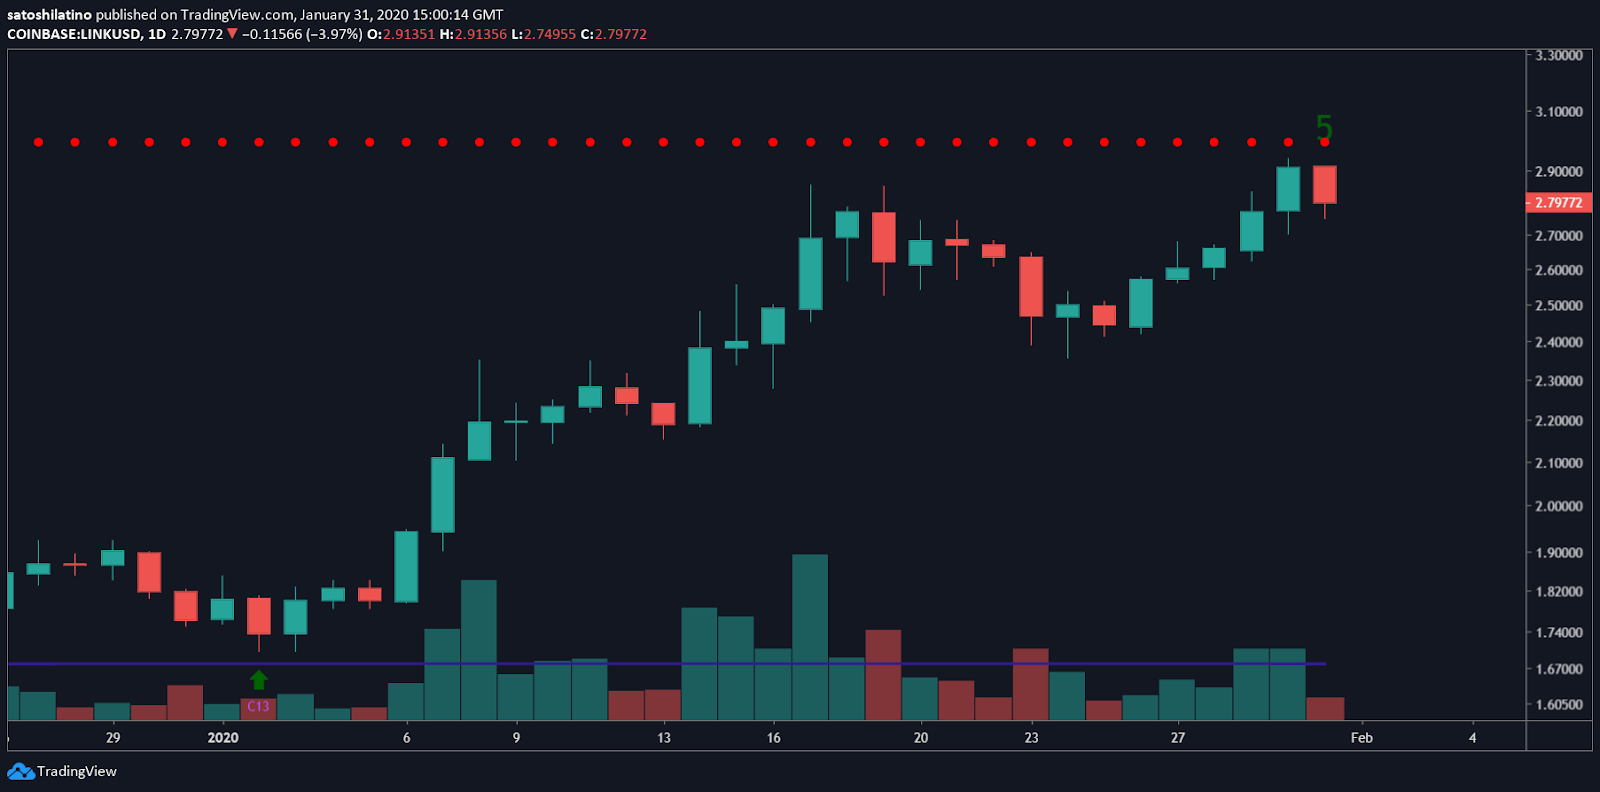 LINK/USD chart by TradingView